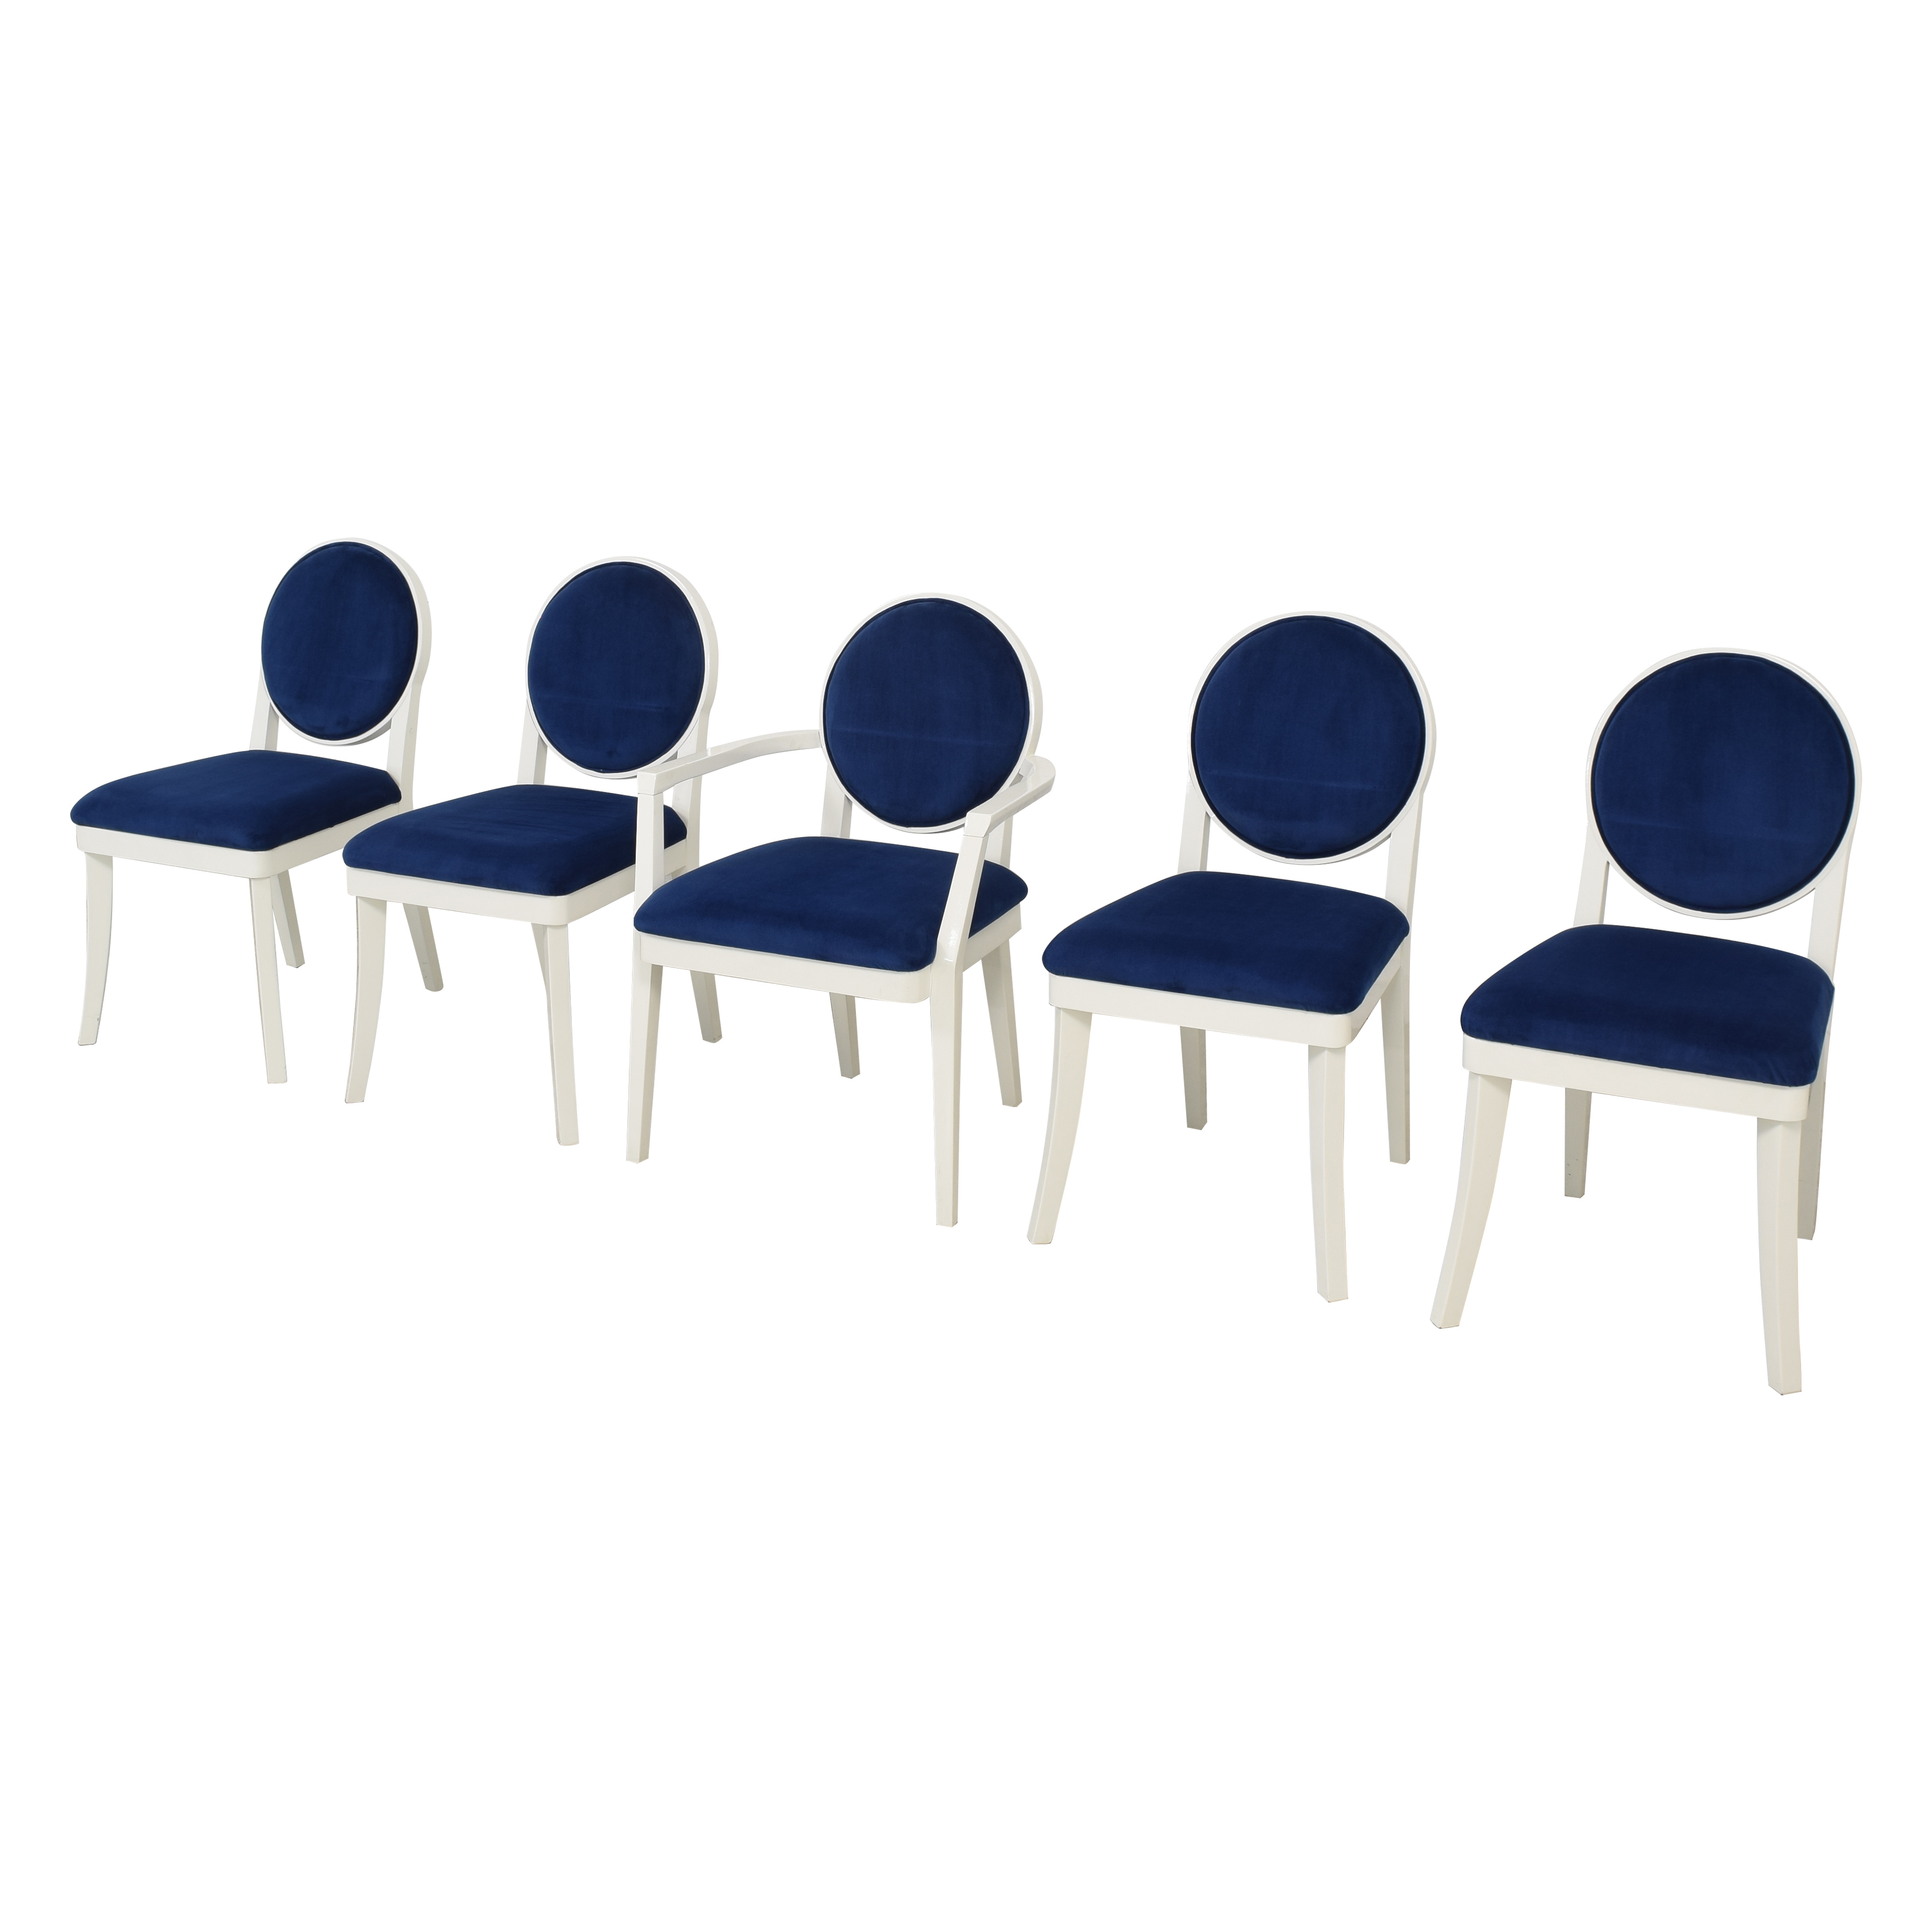 shop Jonathan Adler Happy Chic Dining Chairs Jonathan Adler Dining Chairs